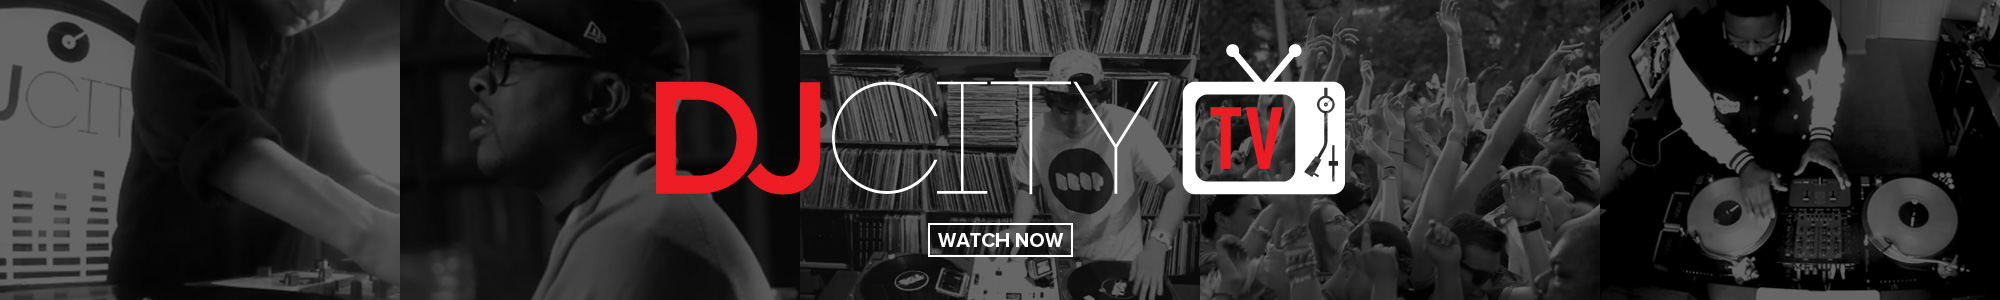 DJcityTV YouTube Channel